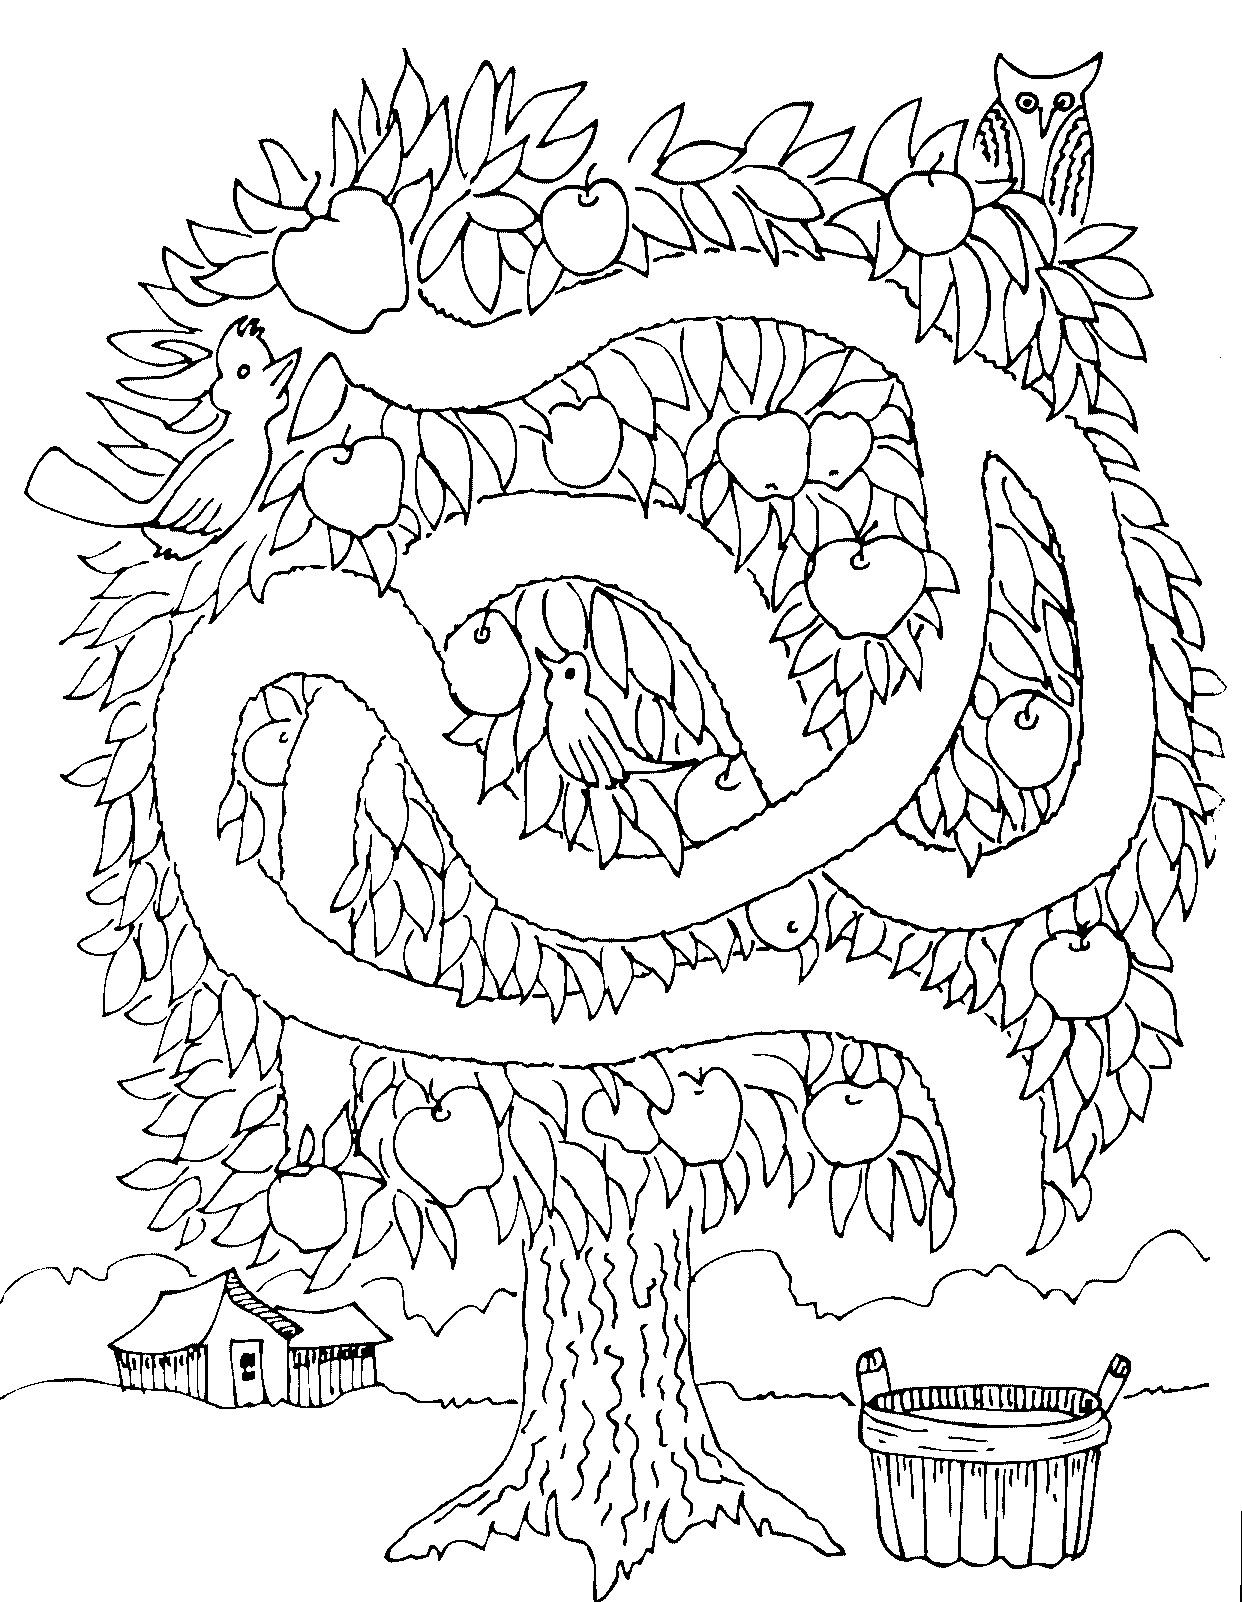 Coloring book page apple tree - Apple Tree Maze She